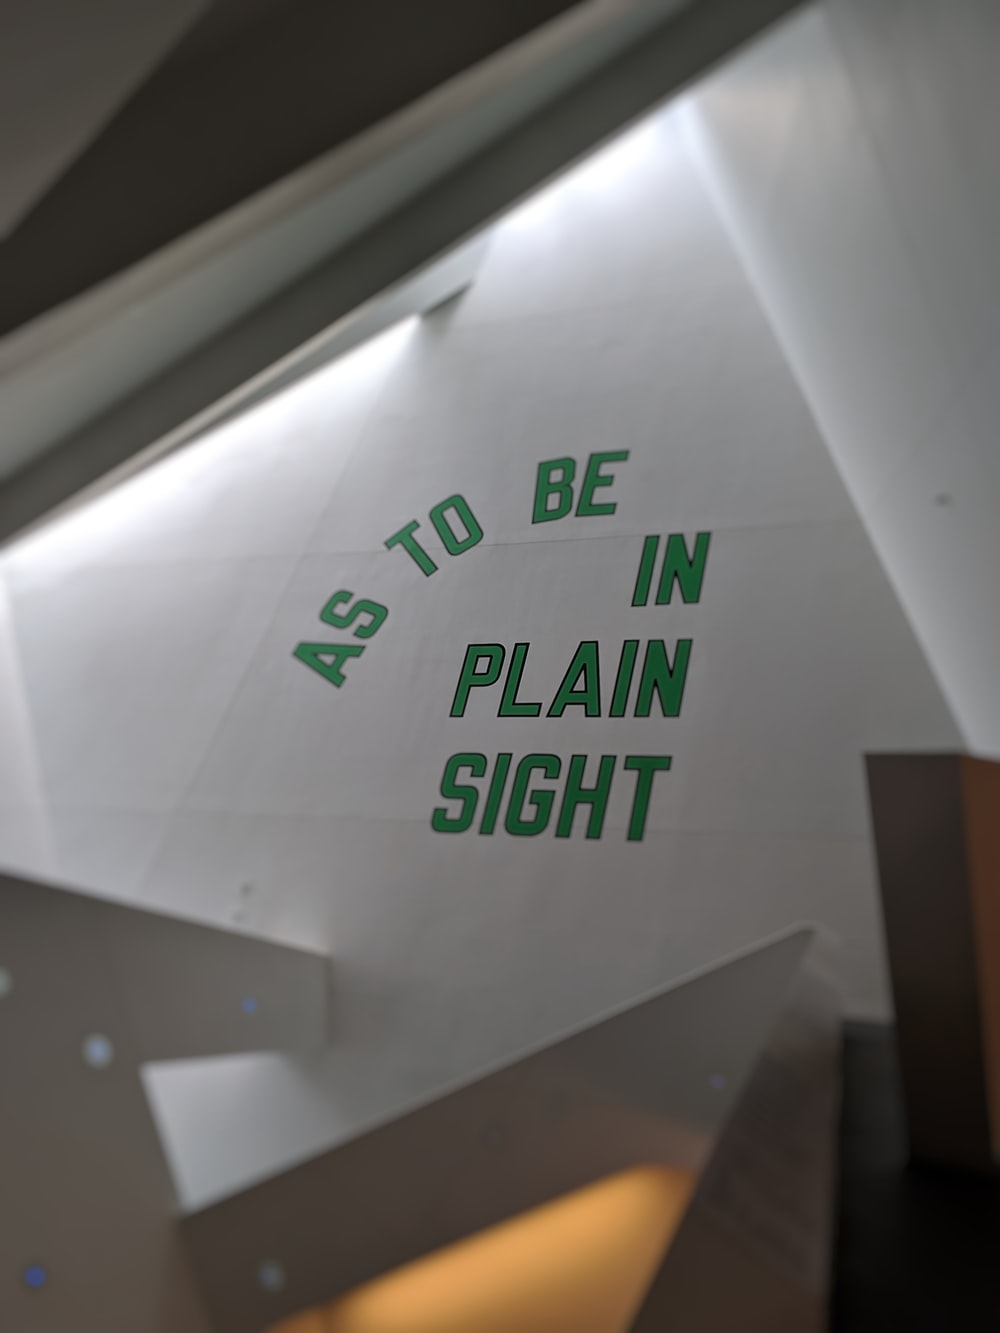 as to be in plain sight text